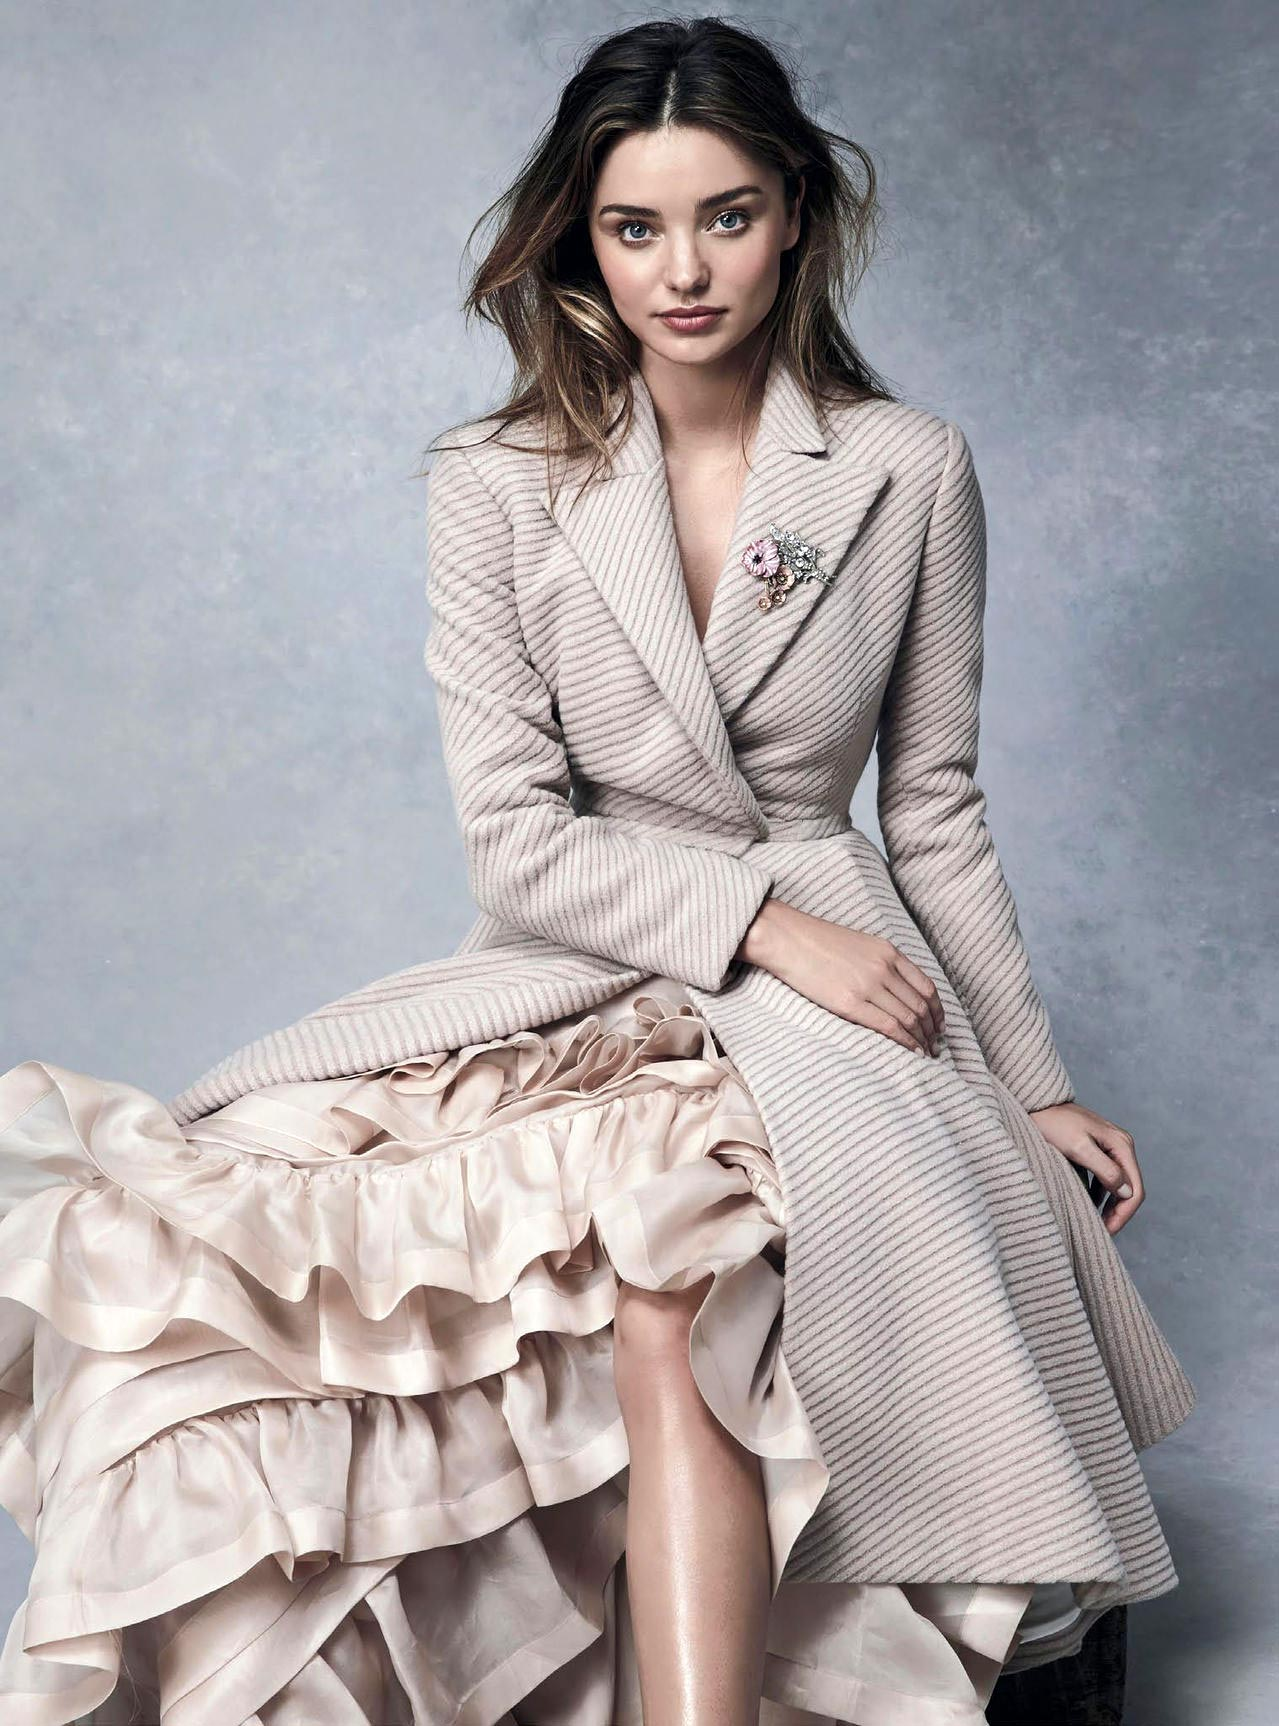 Miranda Kerr Photoshoot For Vogue Australia July